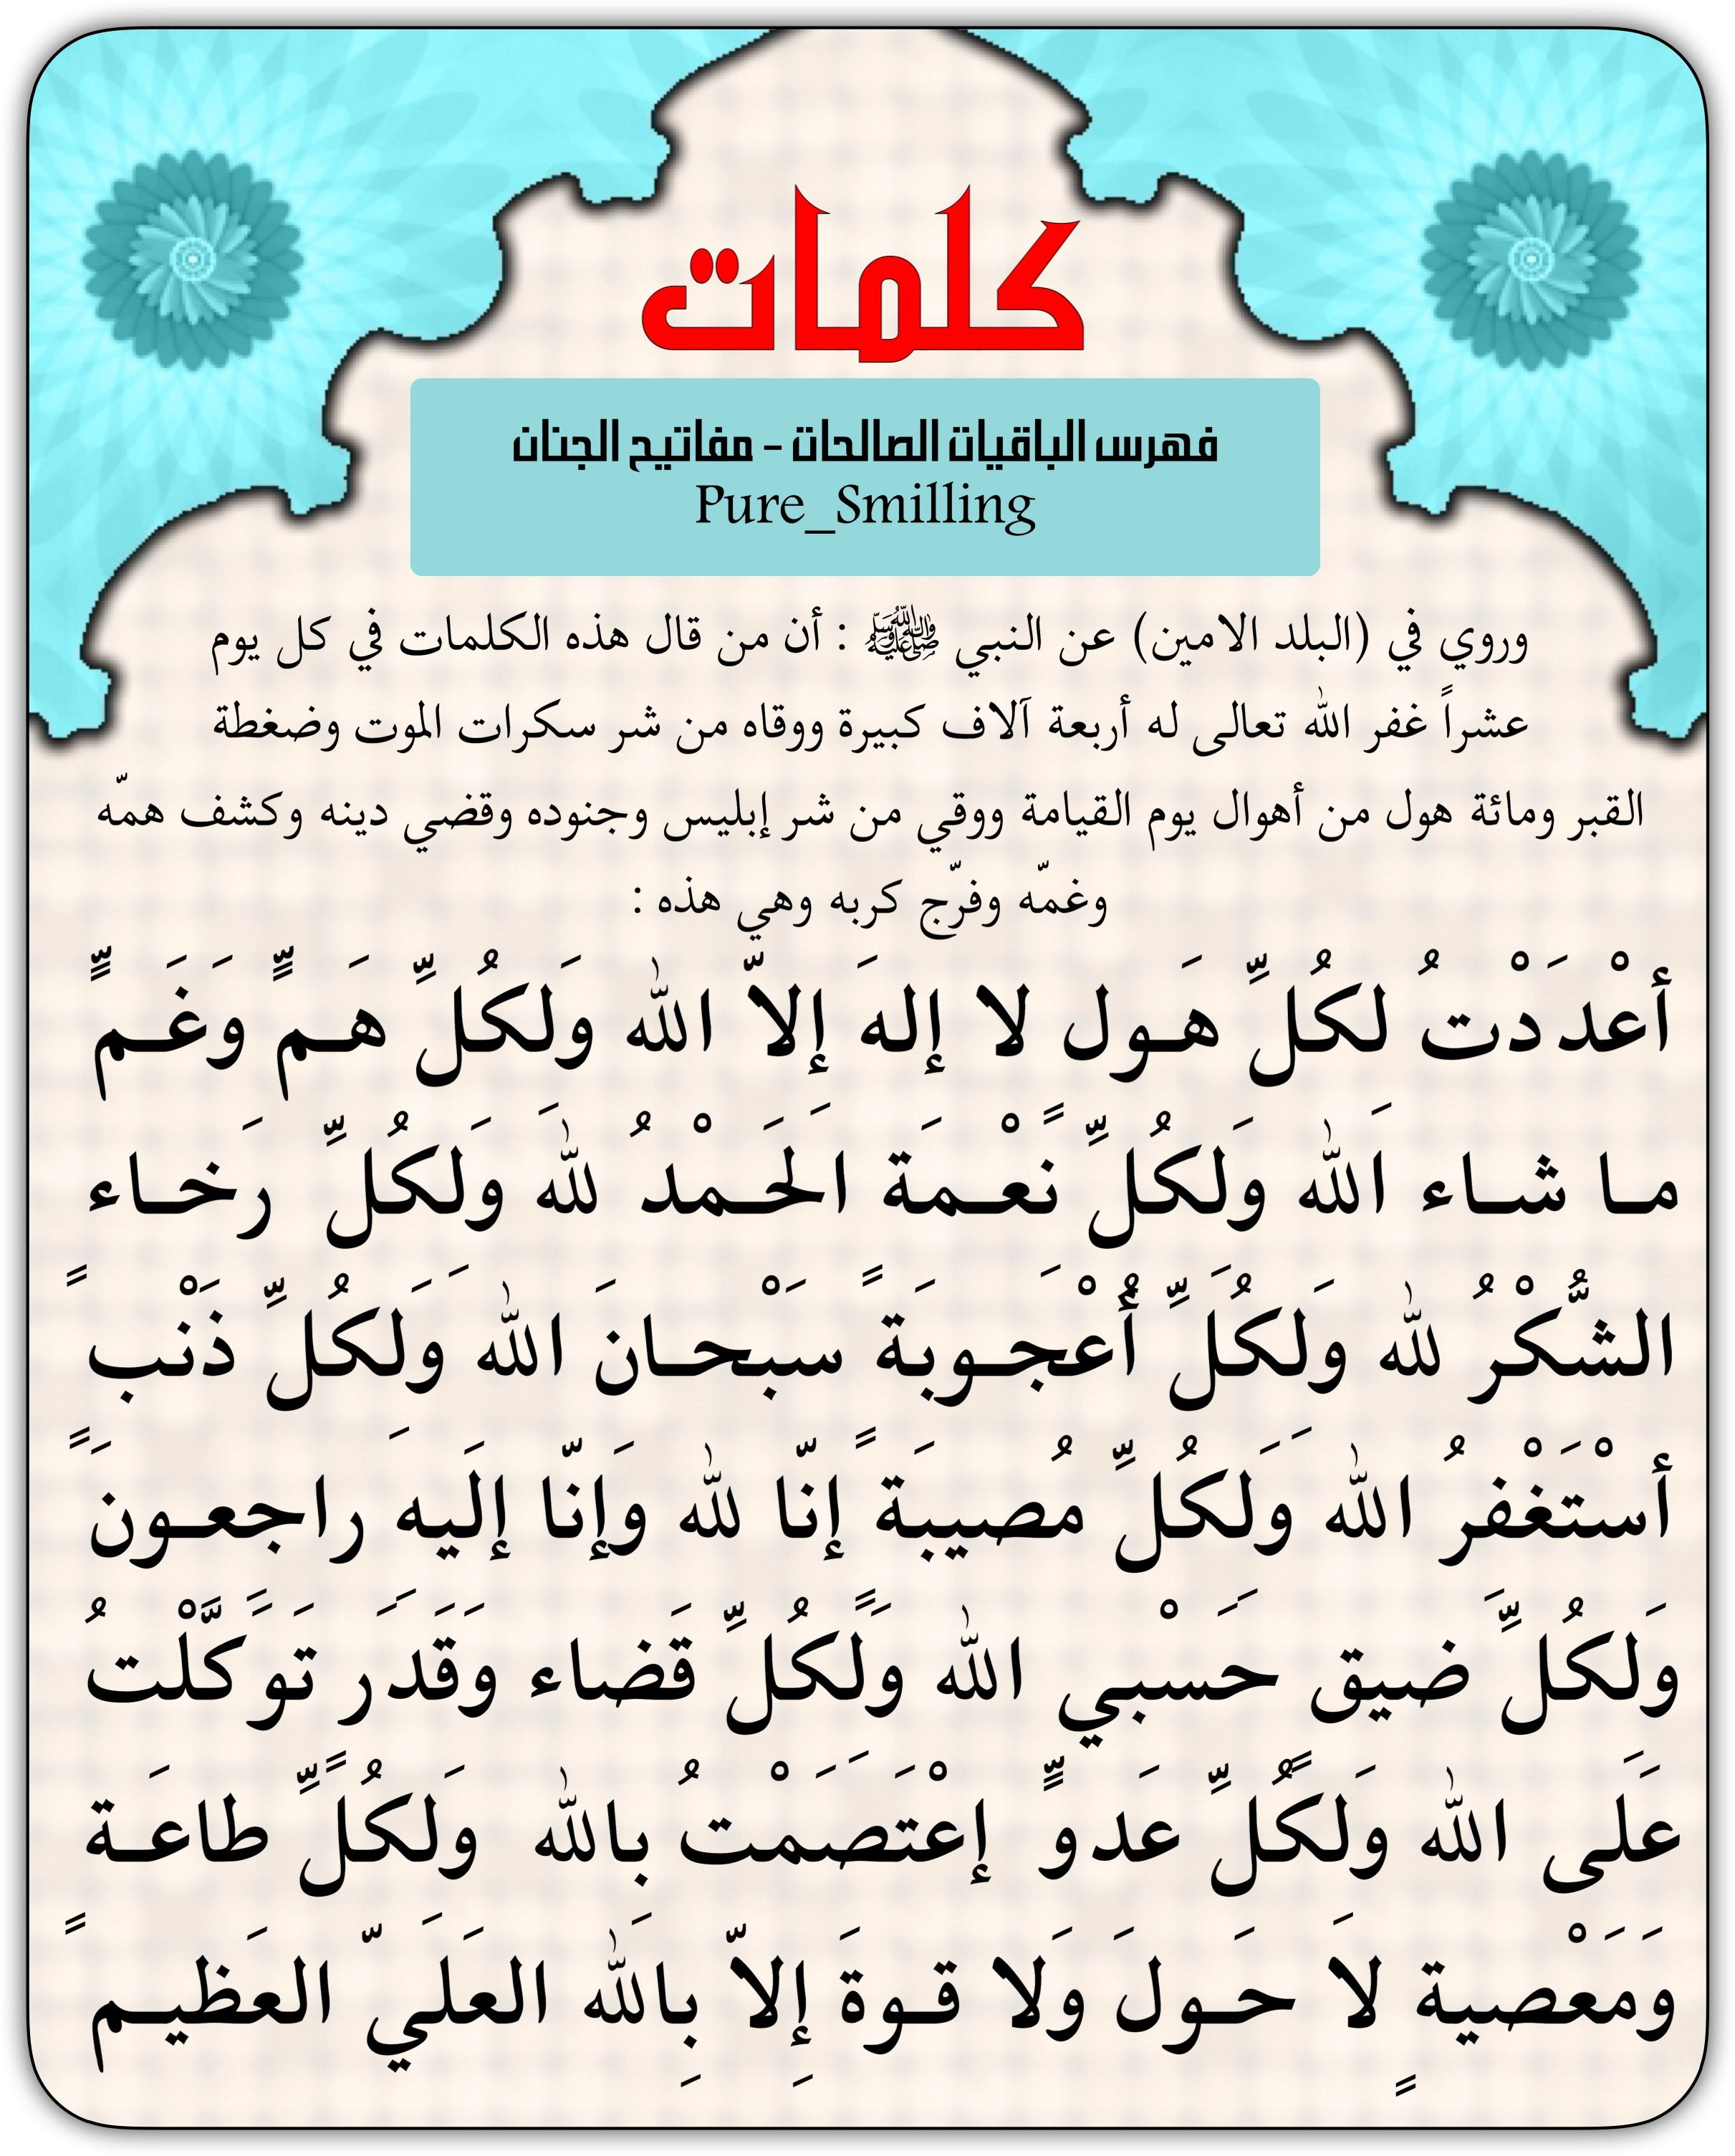 Pin By Adel A Shamali On أدعية Duaa Islamic Images Words Word Search Puzzle